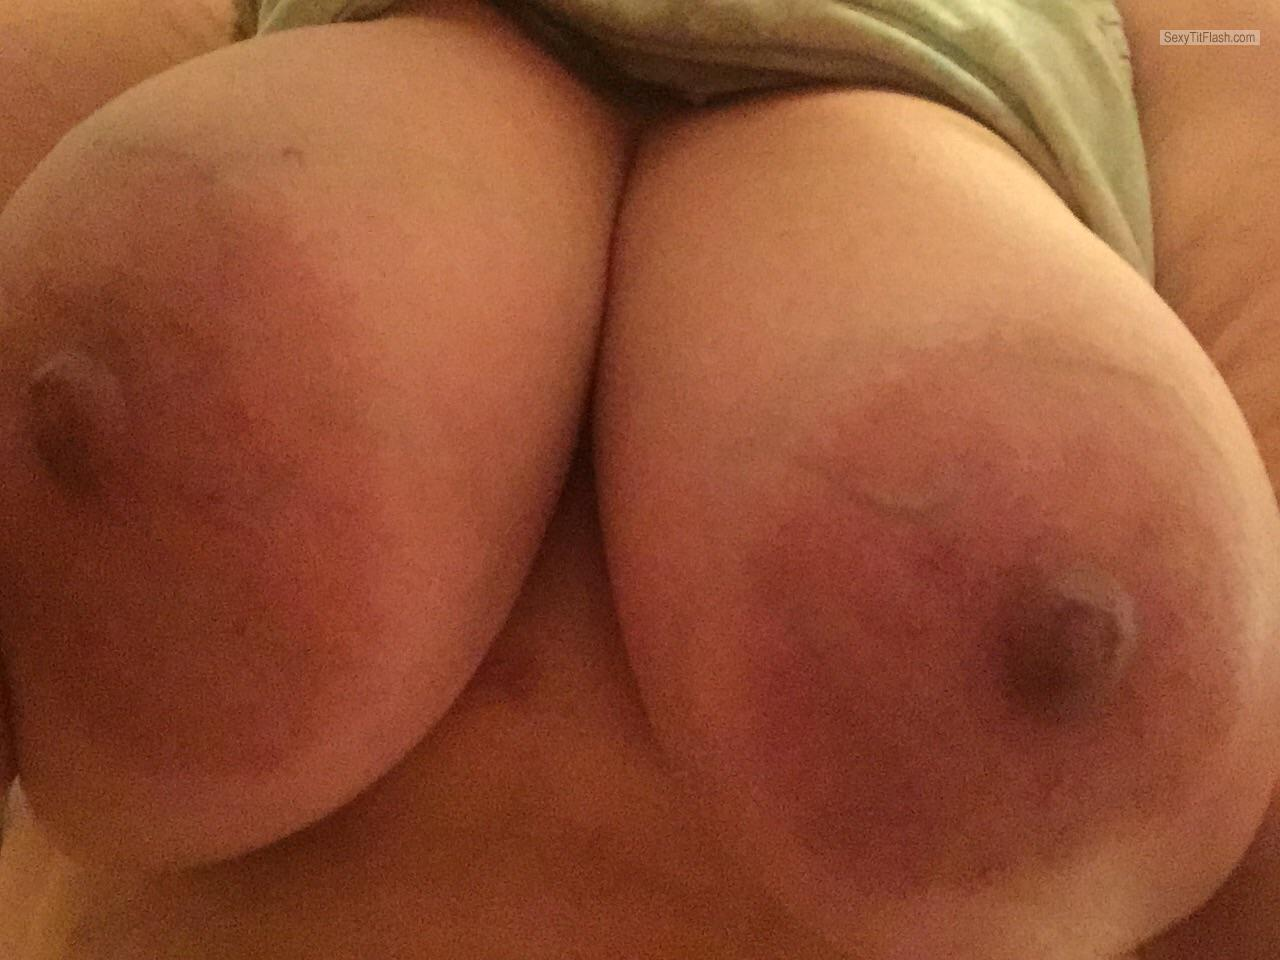 Tit Flash: My Very Big Tits (Selfie) - Topless Cammie from United States